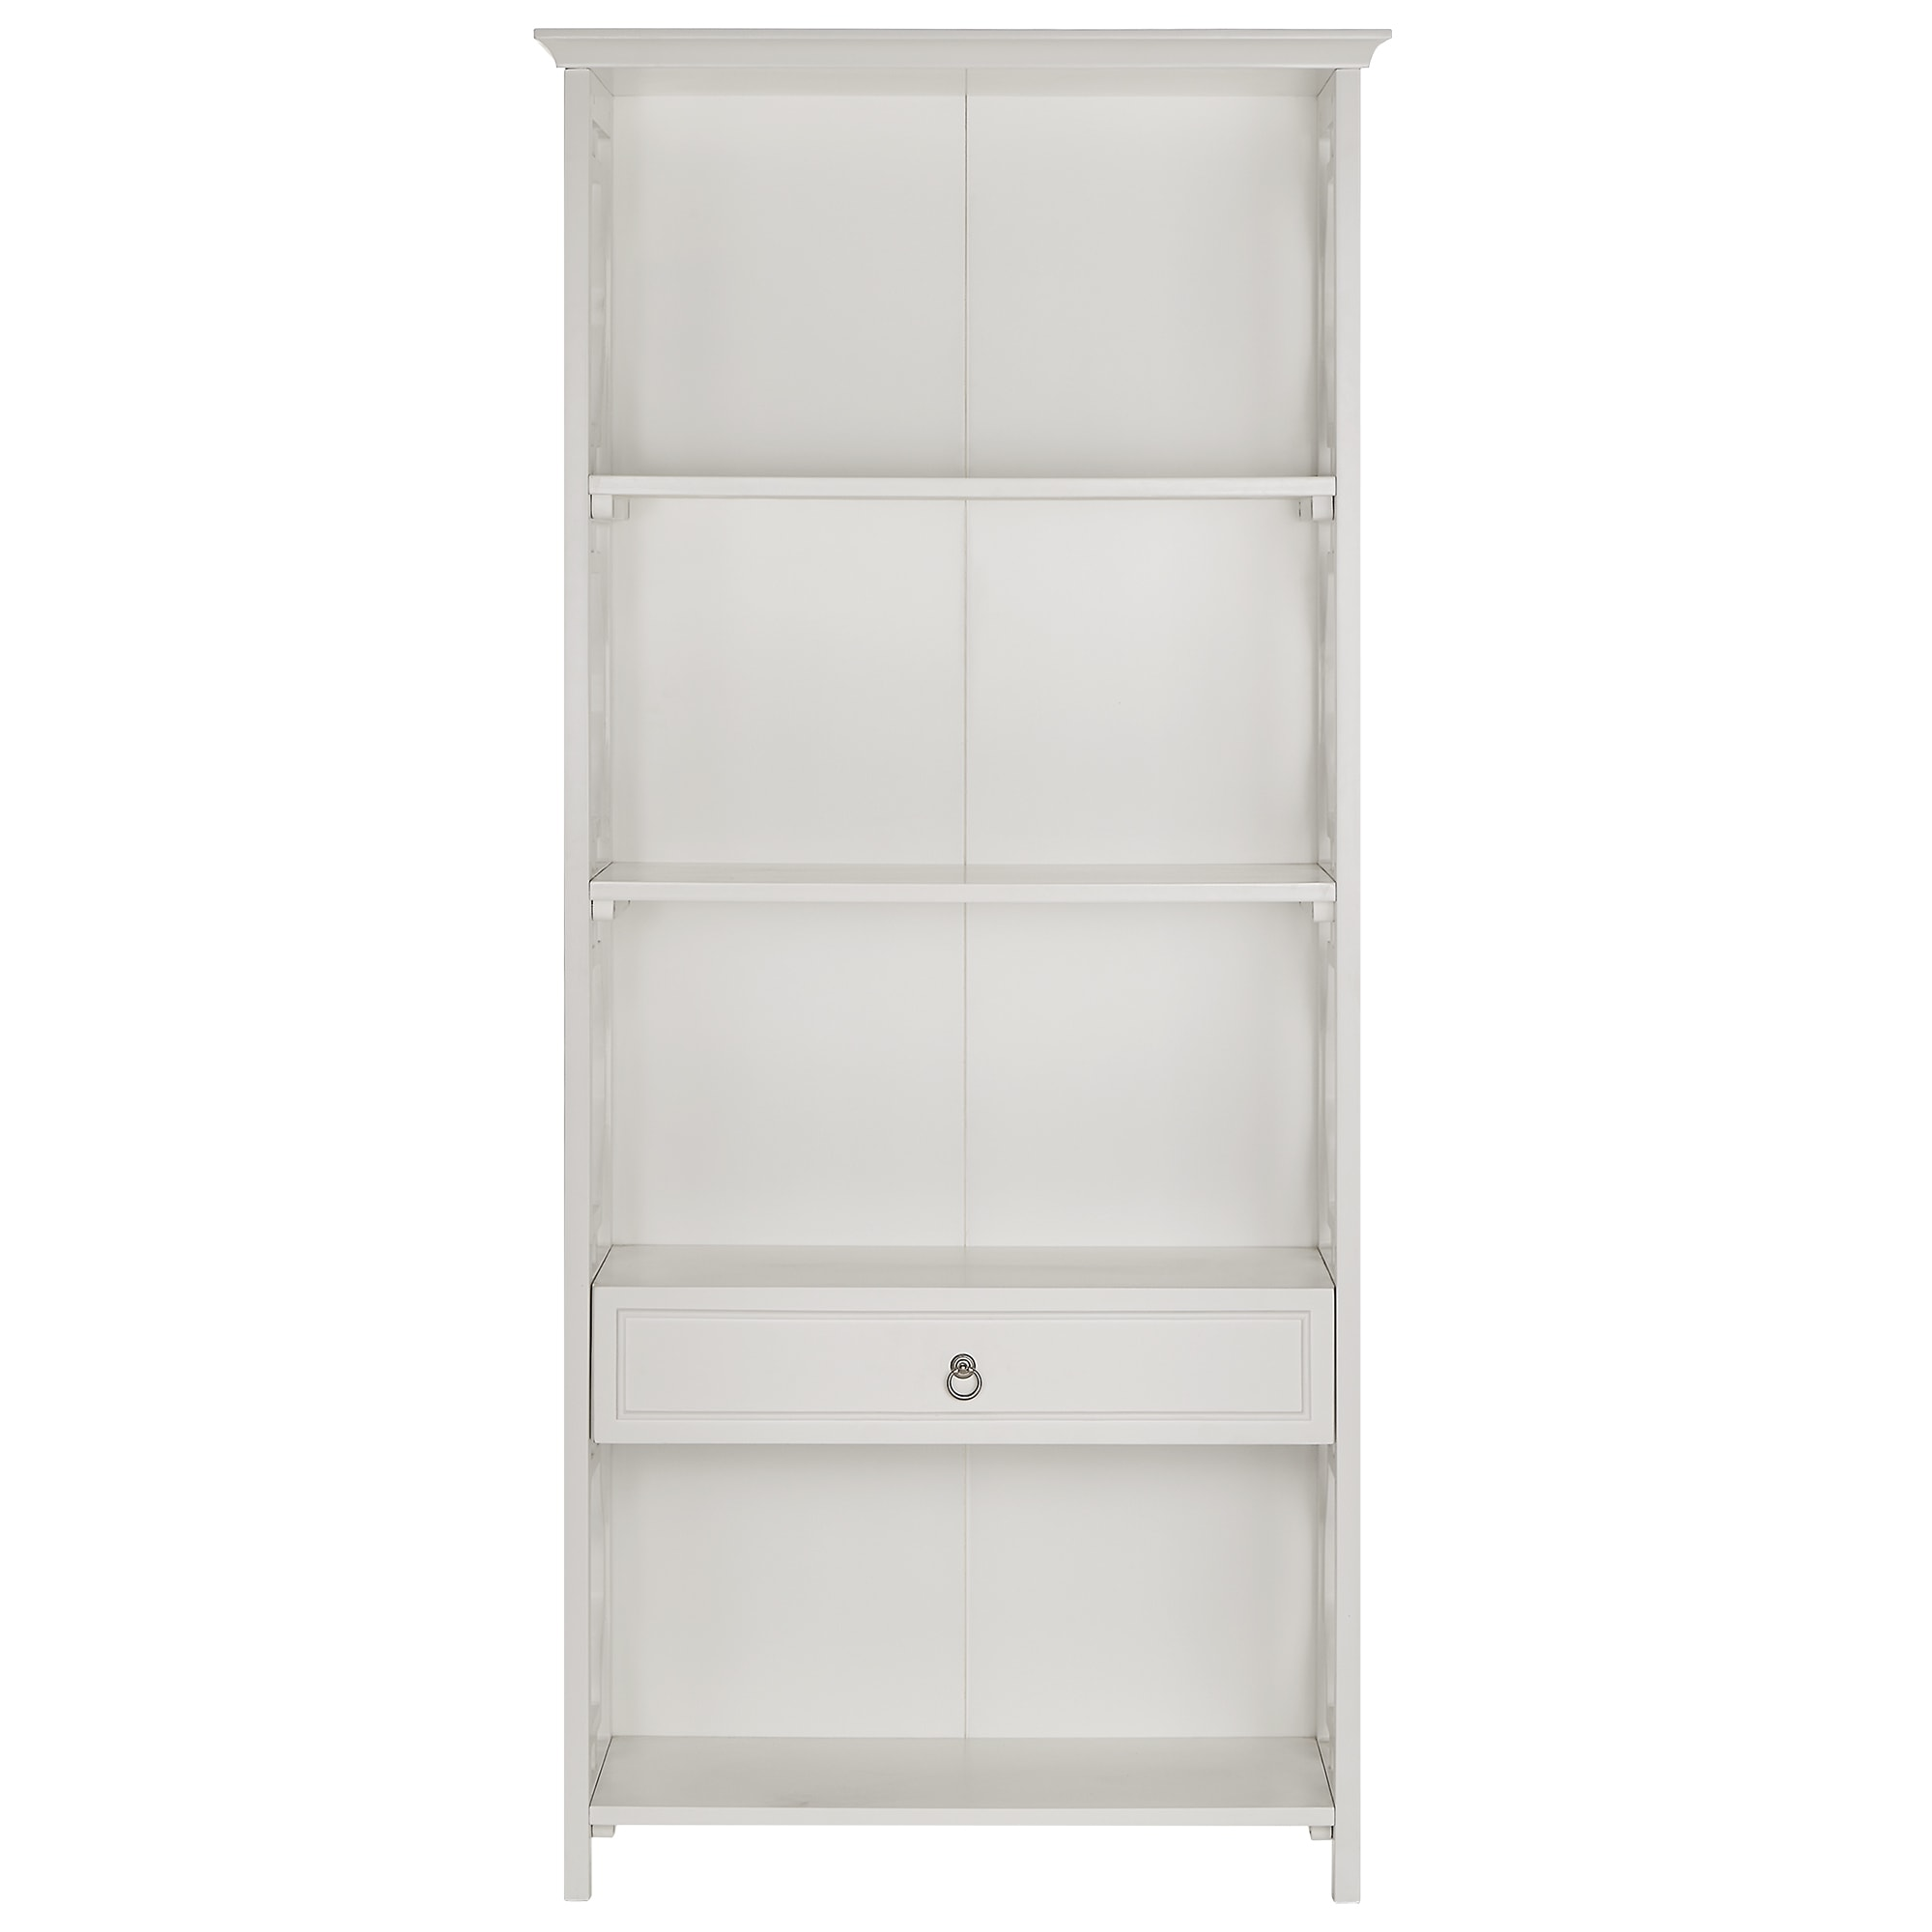 wooden white of bookshelves doors your idea keep drawers four lovely to books and furniture with some glass bookshelf